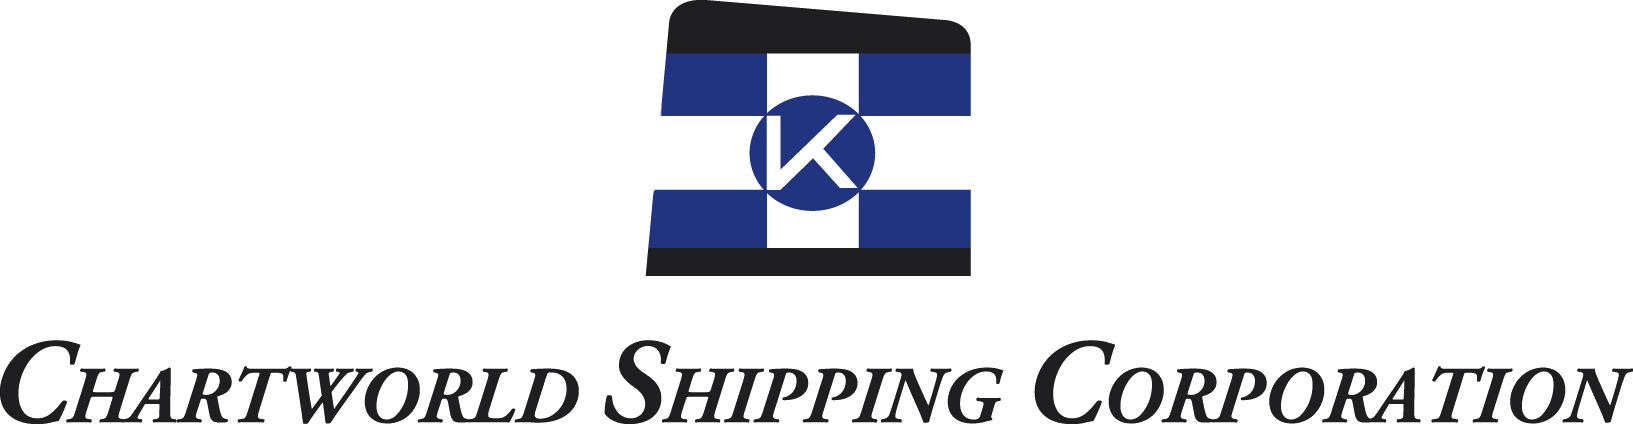 Chartworld Shipping Corporation